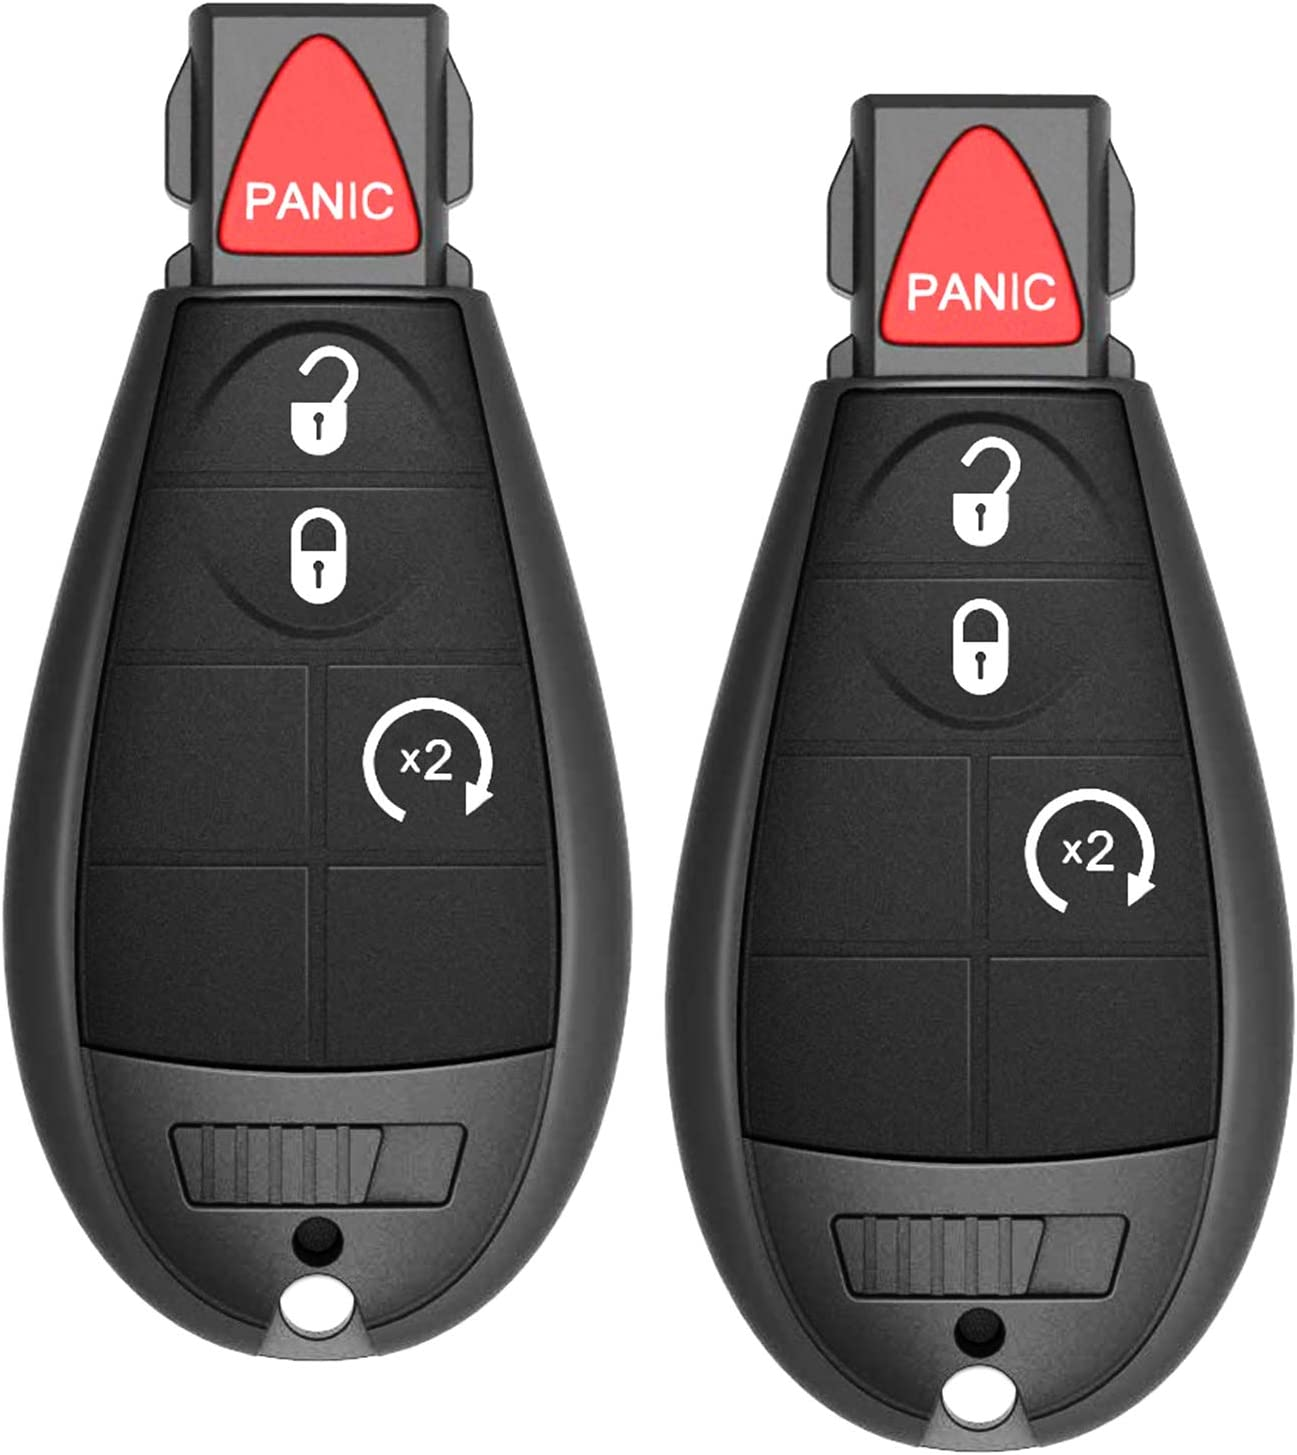 Journey 2009-2013 Set of 2 Challenger 2008-2014 Charger 2008-2012 VOFONO Remote Car Key Fob Fit for Chrysler Town and Country 2008-2010// Dodge Durango 2008-2013 Grand Caravan 2008-2014